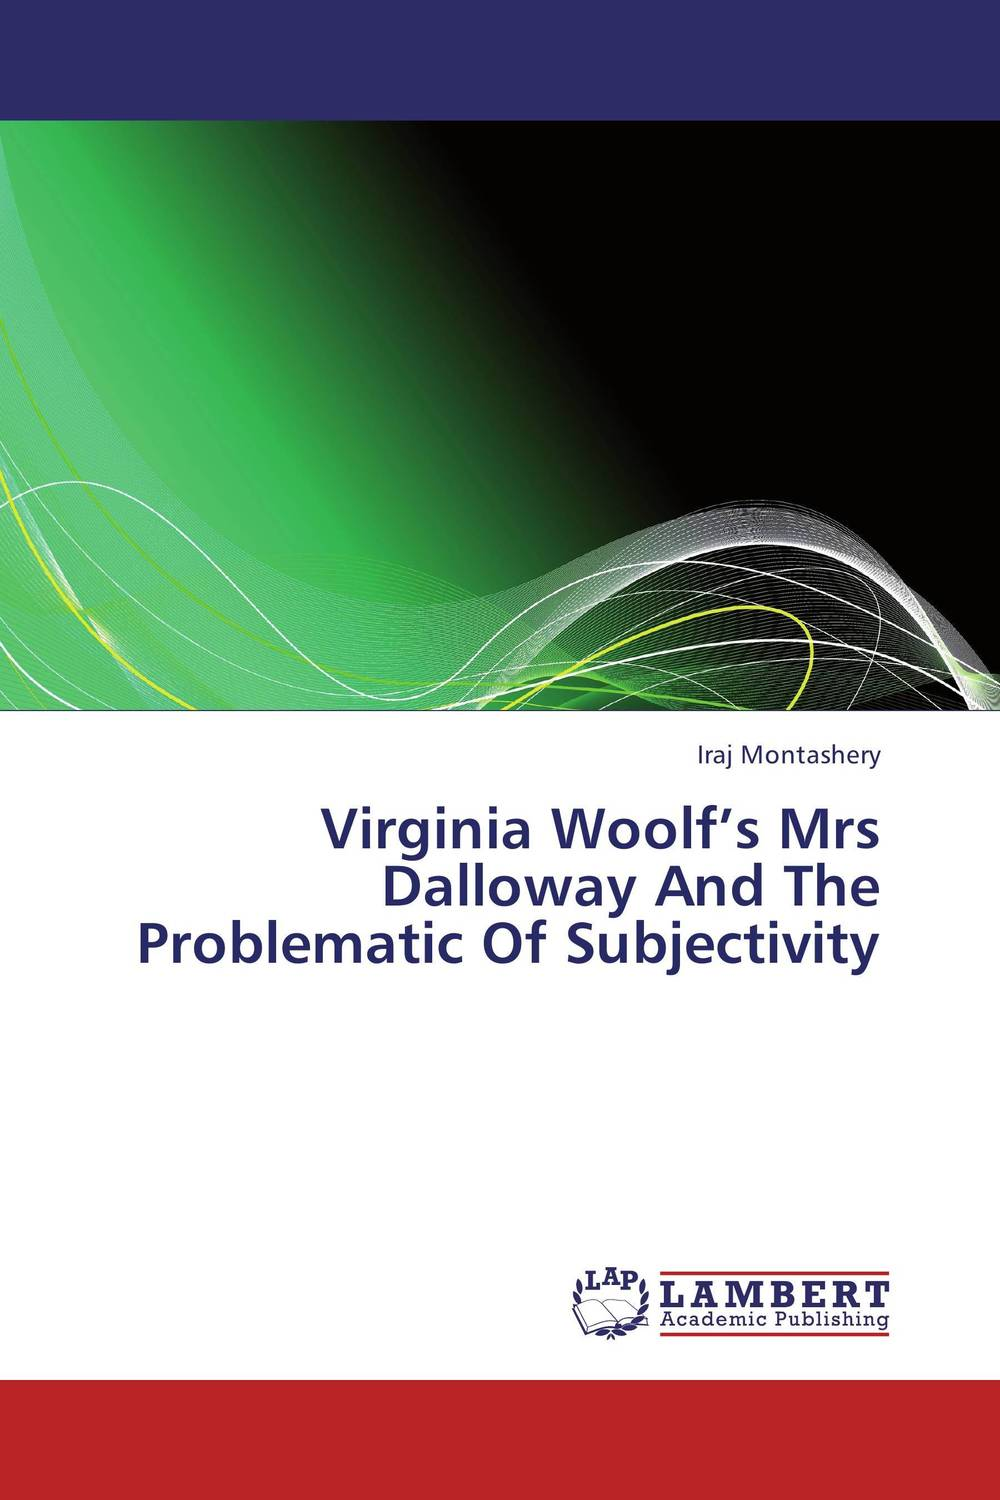 Virginia Woolf's Mrs Dalloway And The Problematic Of Subjectivity чехол для iphone 4 глянцевый с полной запечаткой printio трейсер